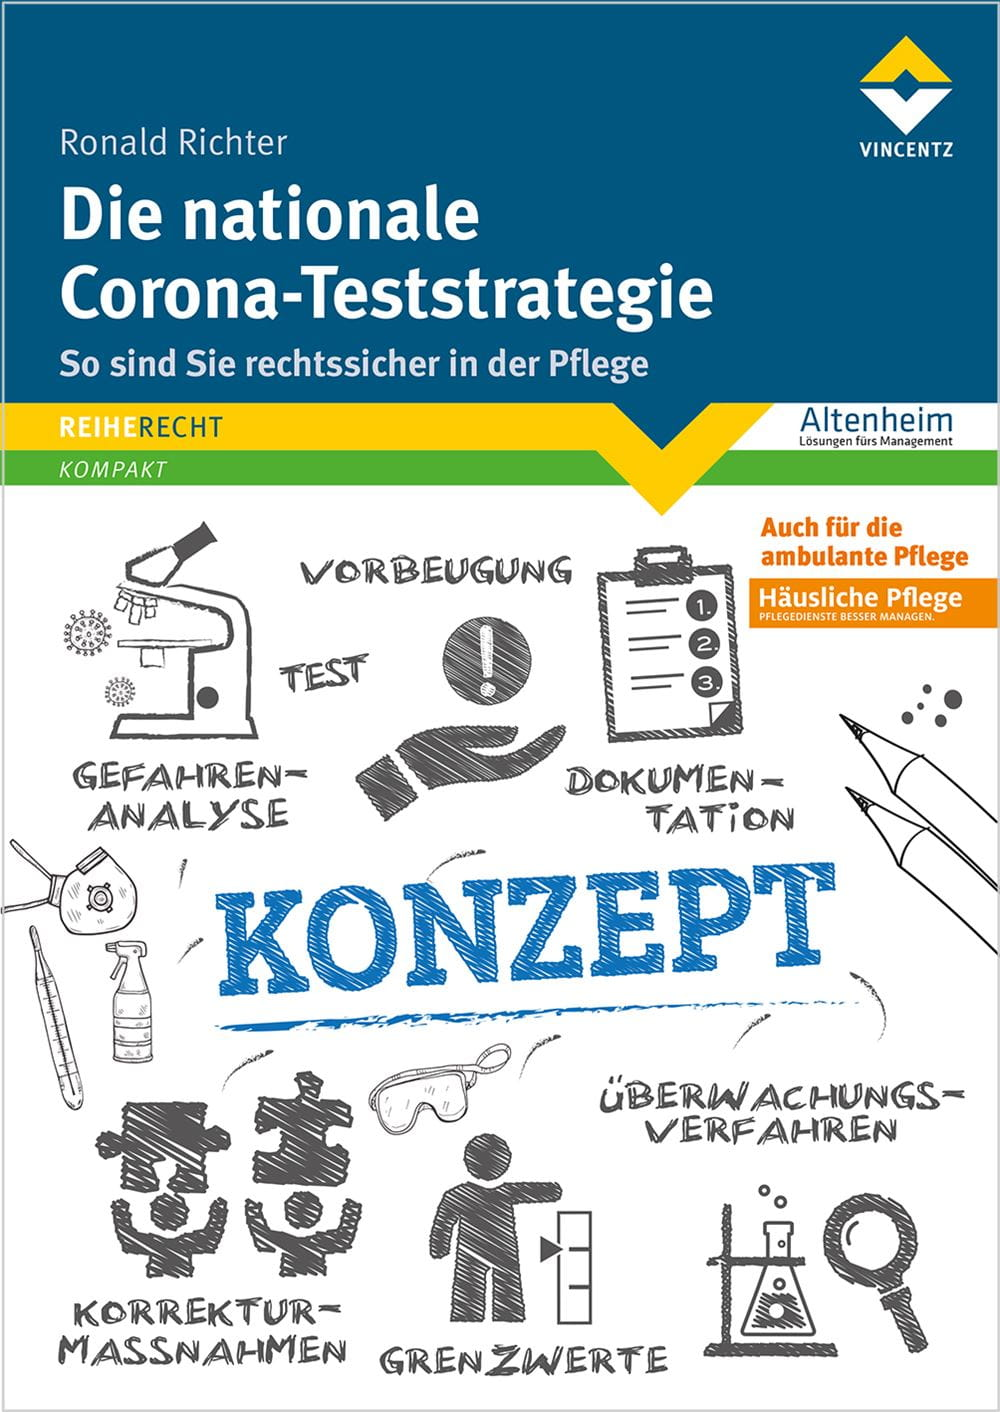 Die nationale Corona-Teststrategie